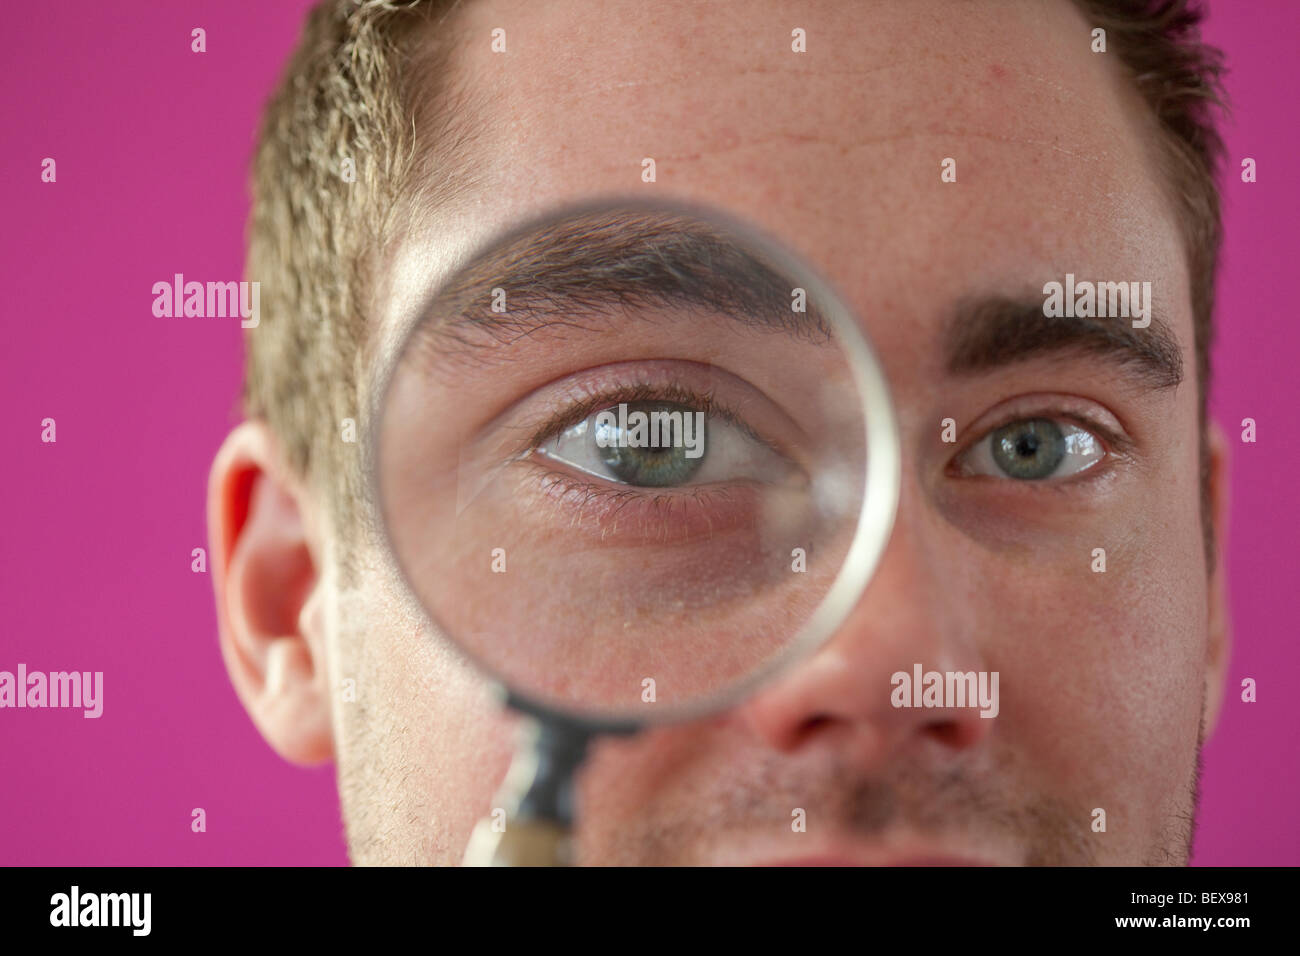 Young man looking through magnifying glass - Stock Image